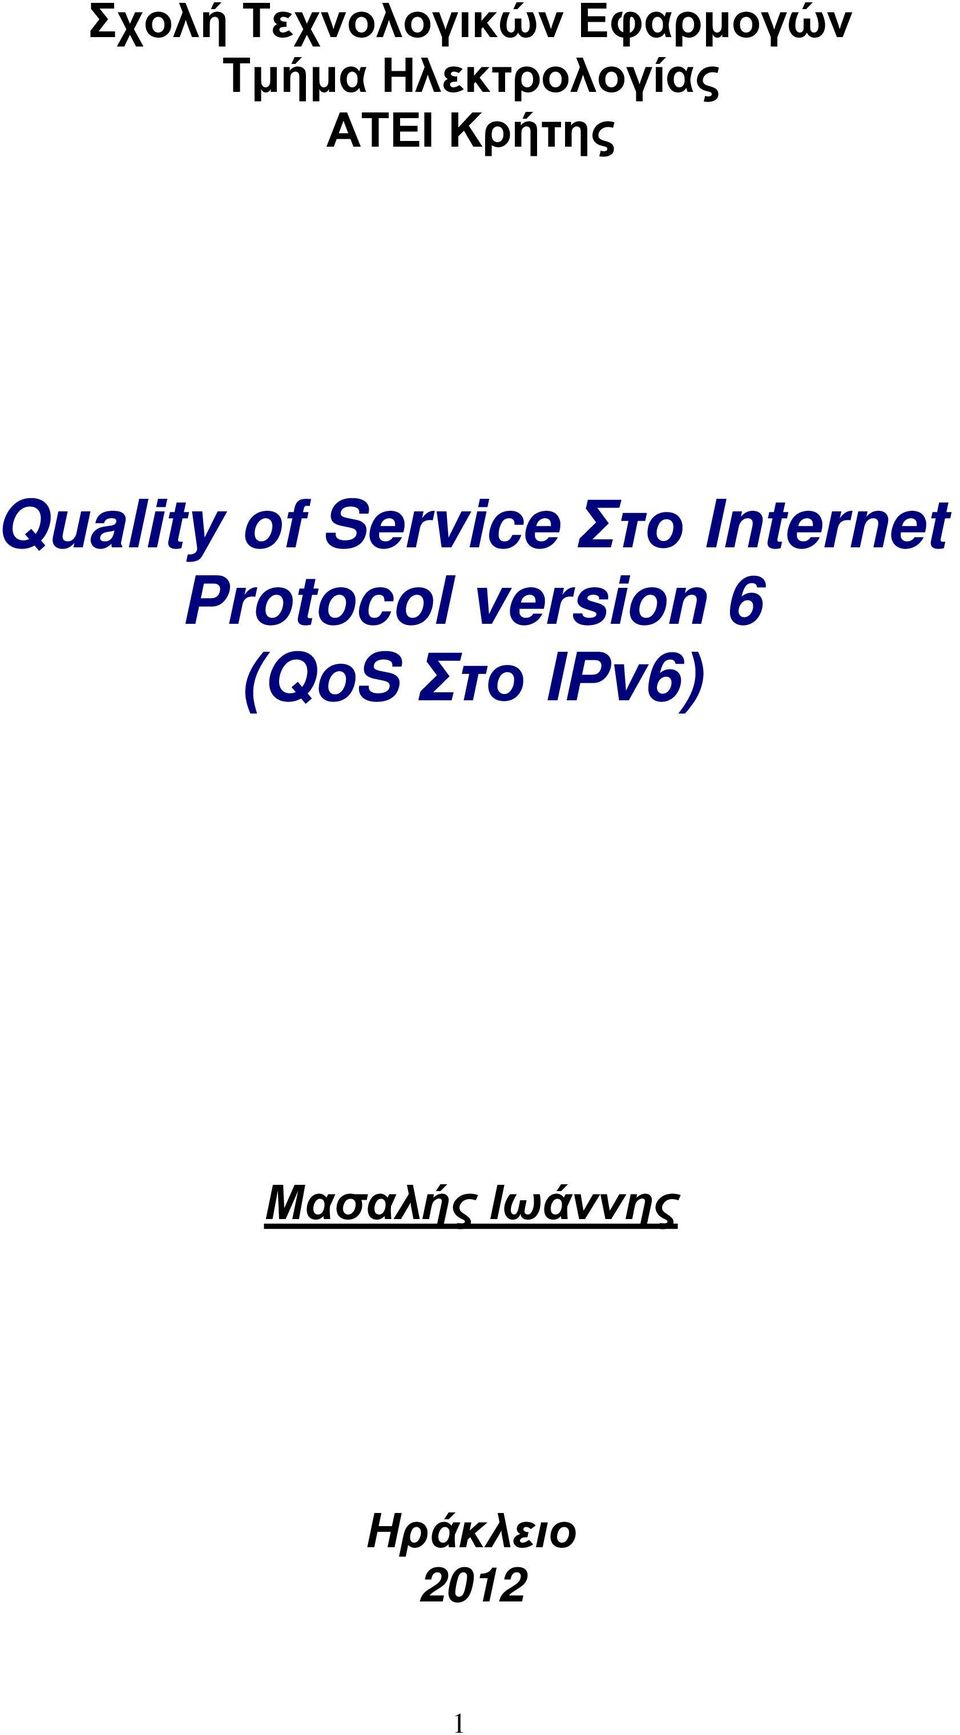 Service Στο Internet Protocol version 6